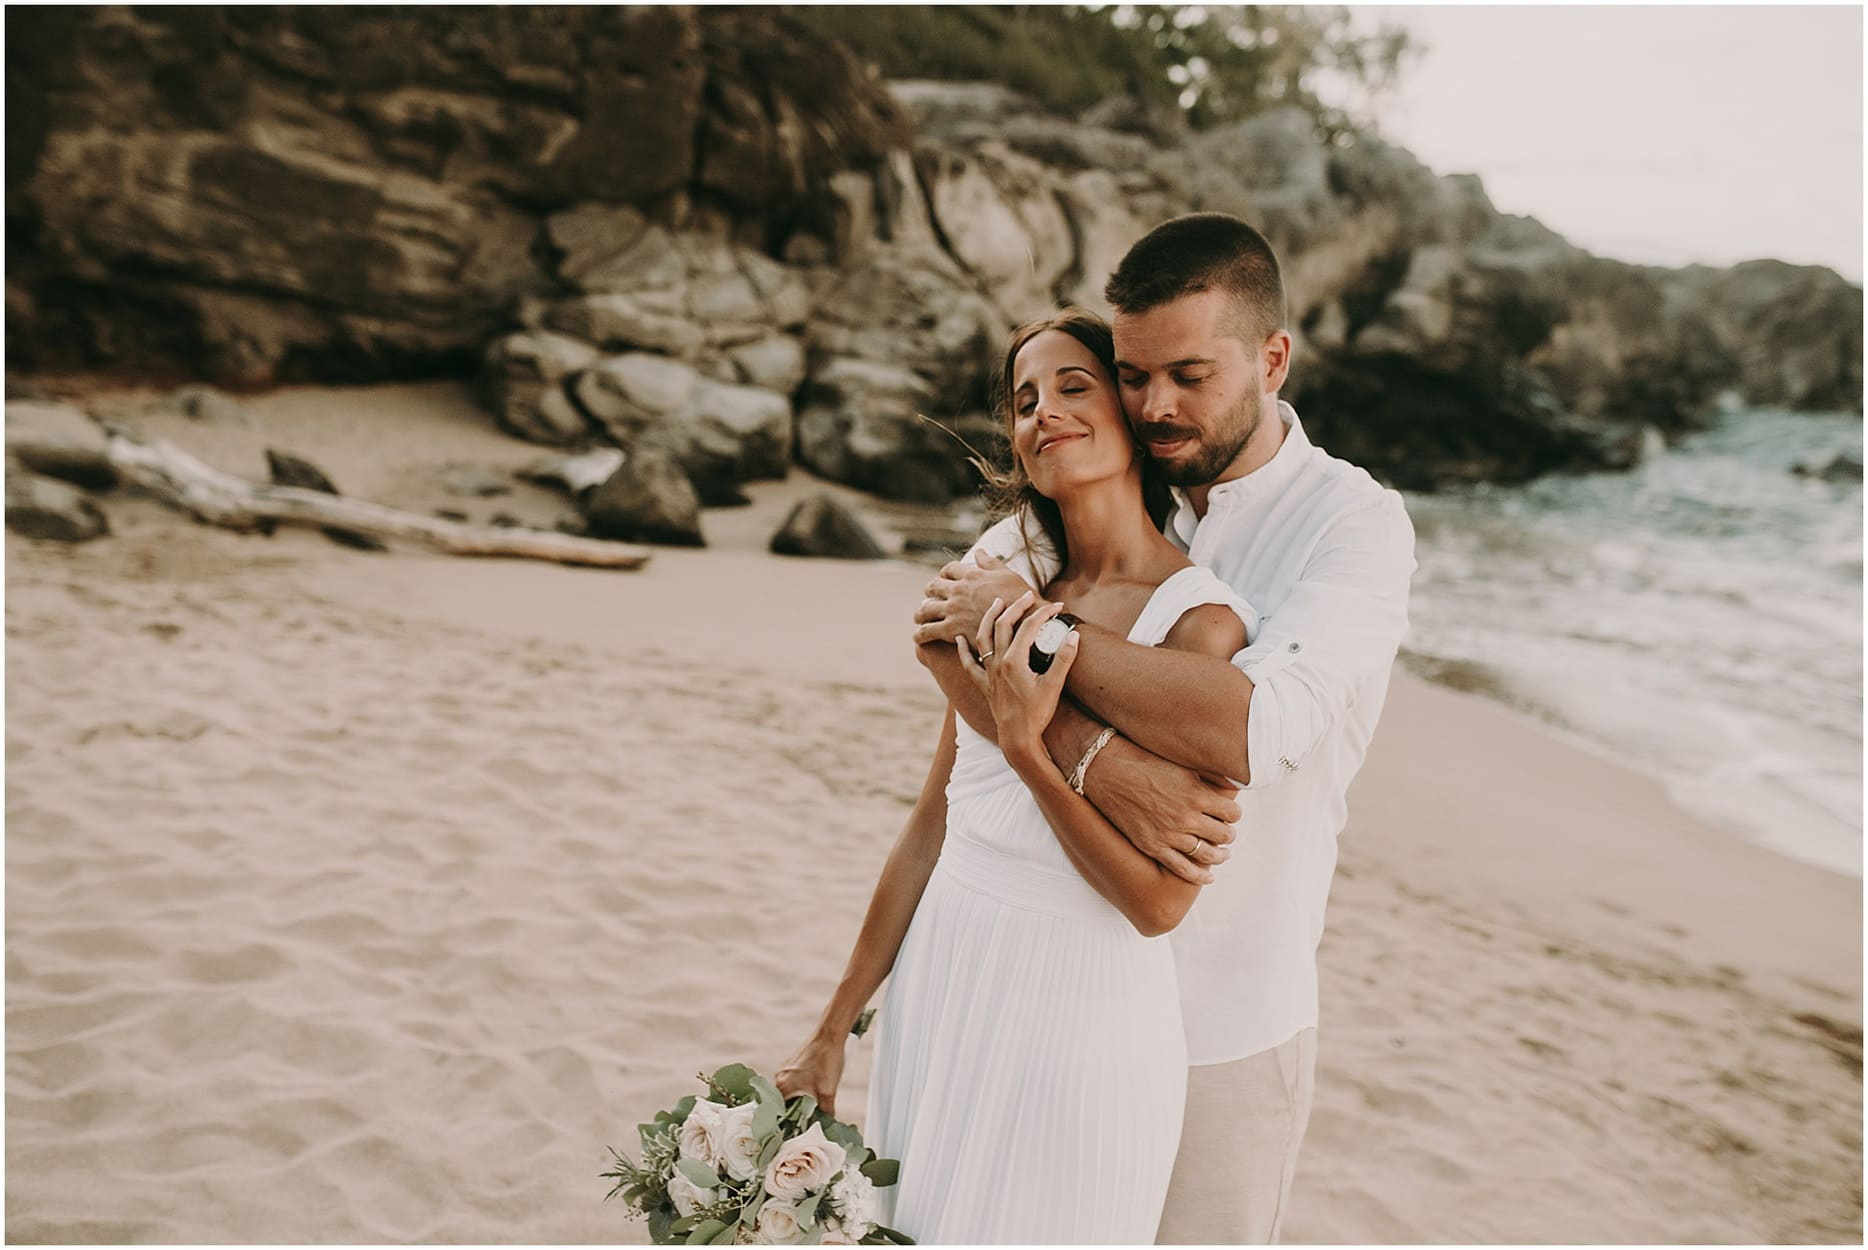 Maui wedding photographer25